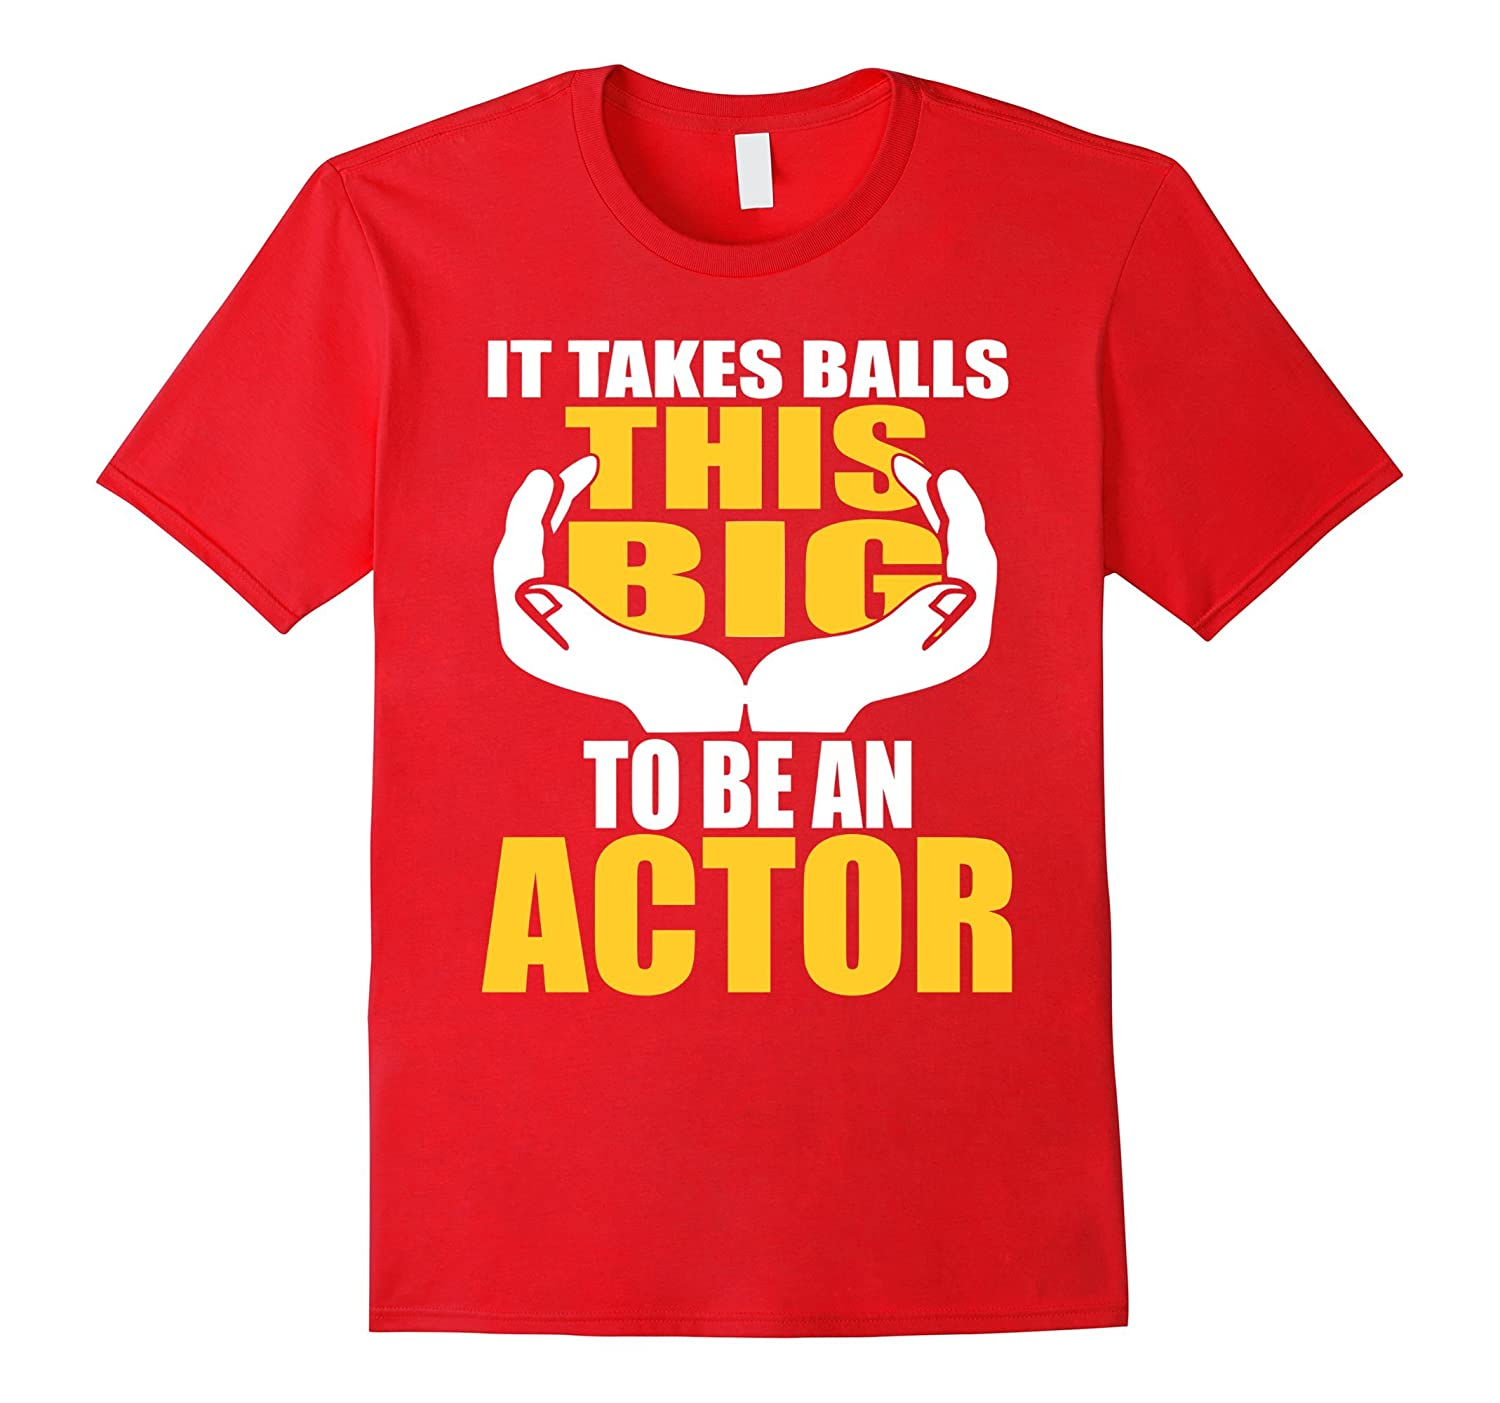 Actor Job Shirt - Funny Saying About Acting - Coworker Gift-TH